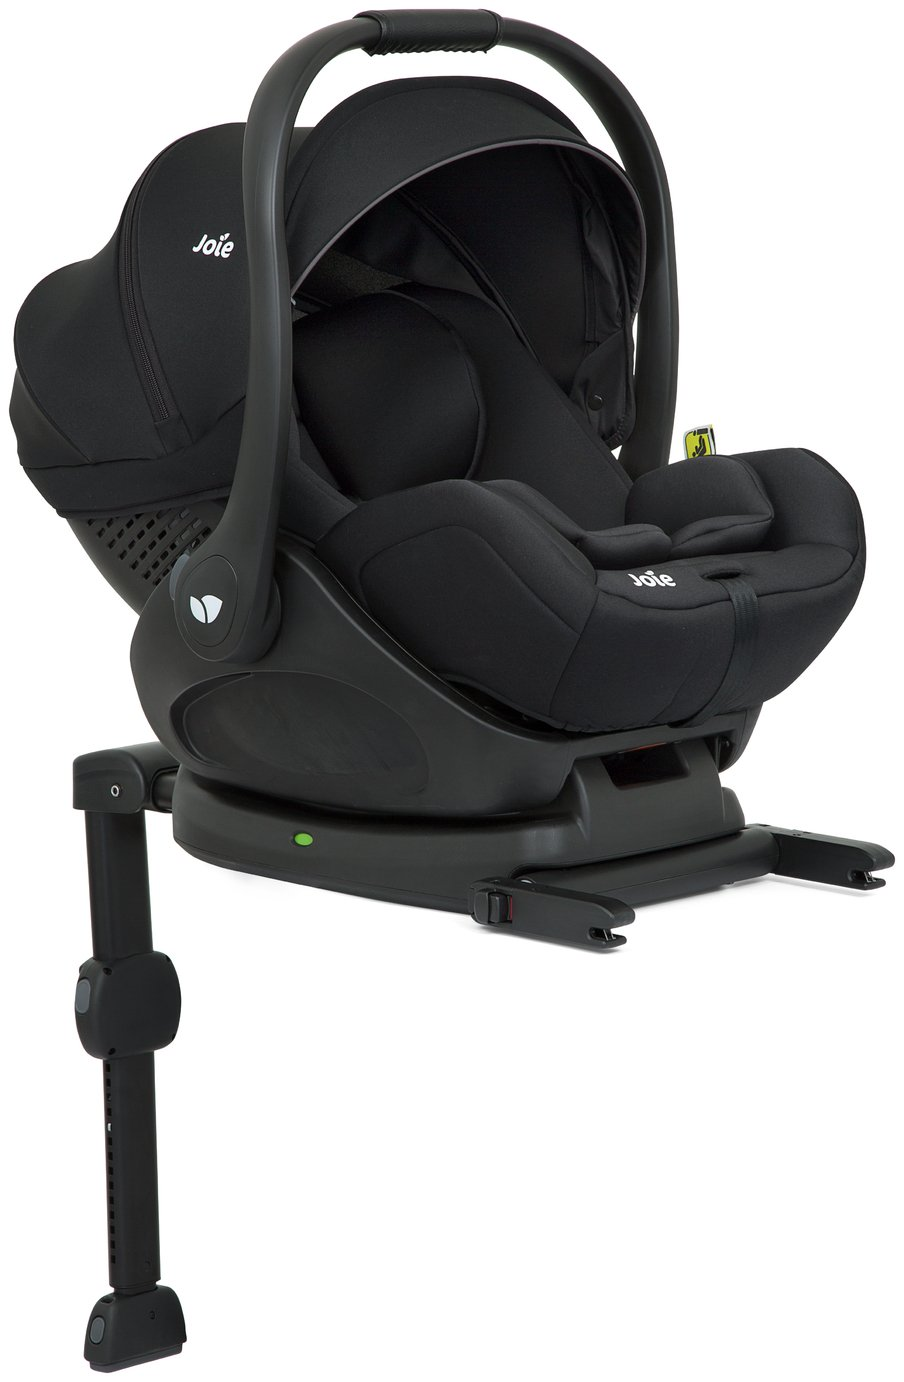 Joie I Level Group 0+ Baby Seat & Base - Black from joie